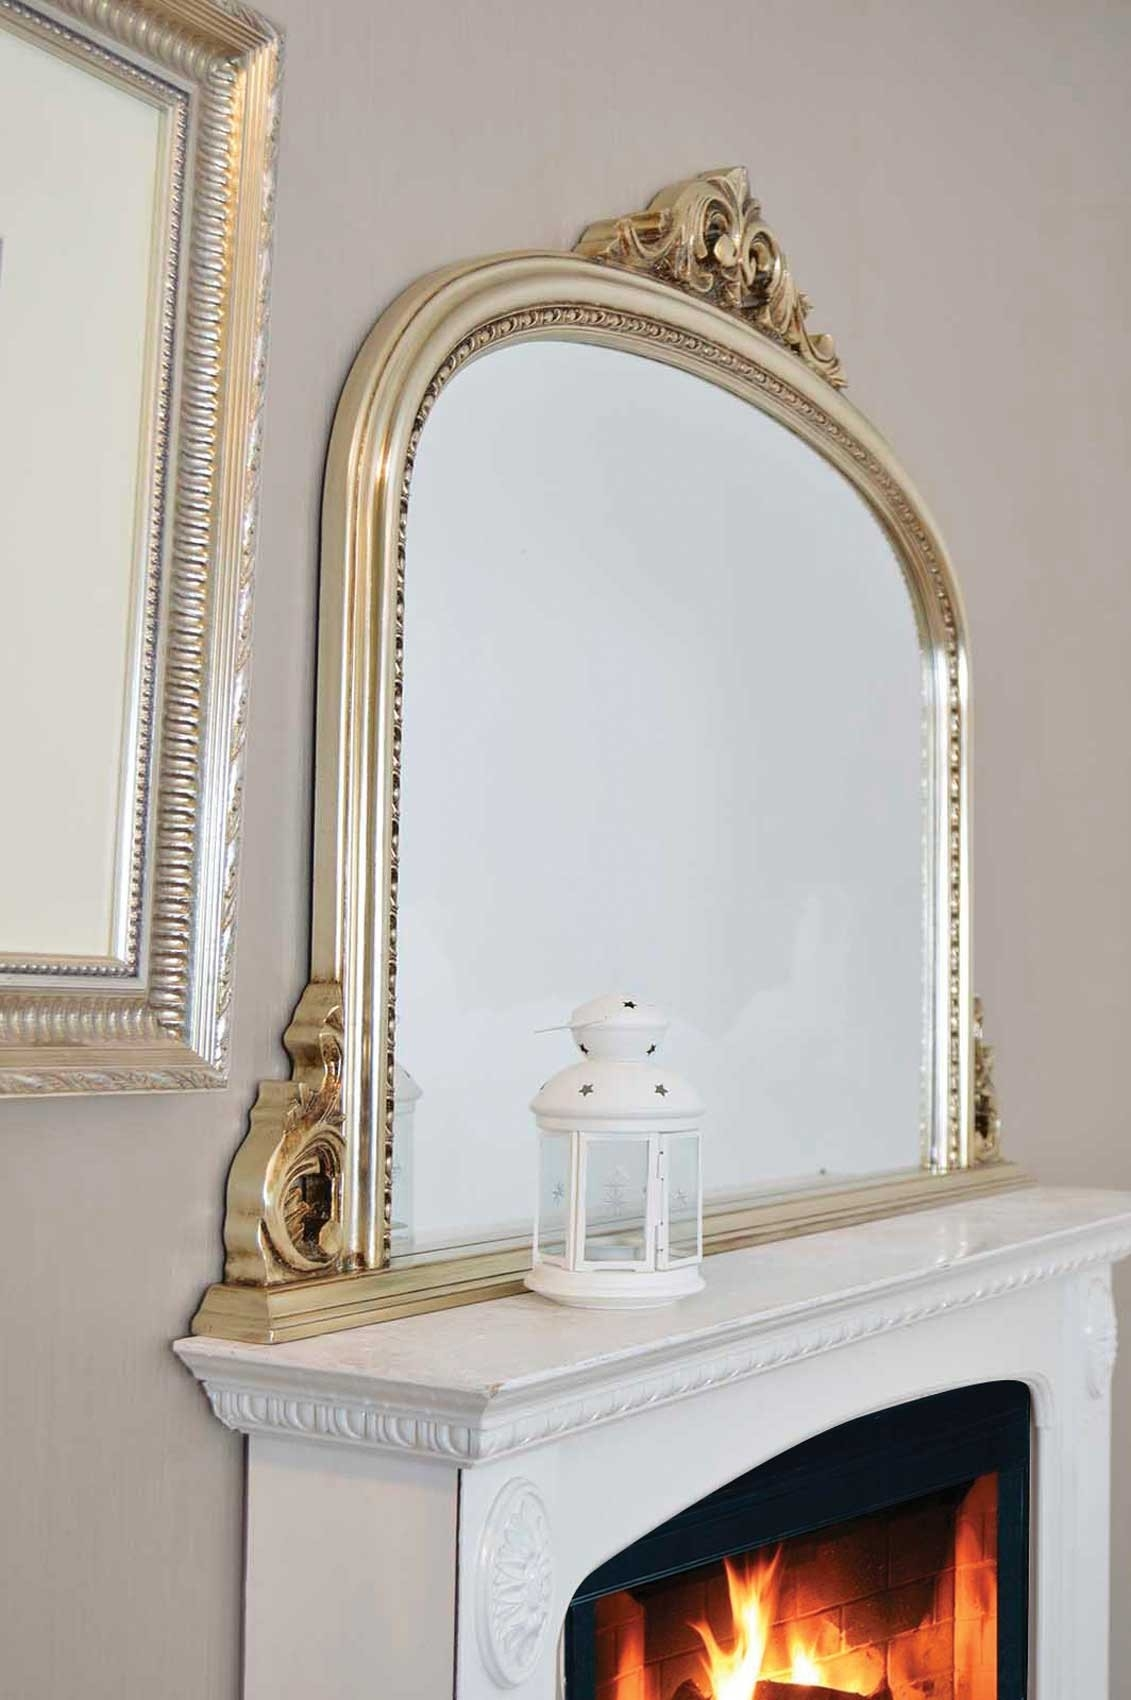 Large Champagne Silver Antique Over Mantle Wall Mirror 4ft2 X 3ft Within Large Mantel Mirrors (Photo 12 of 15)